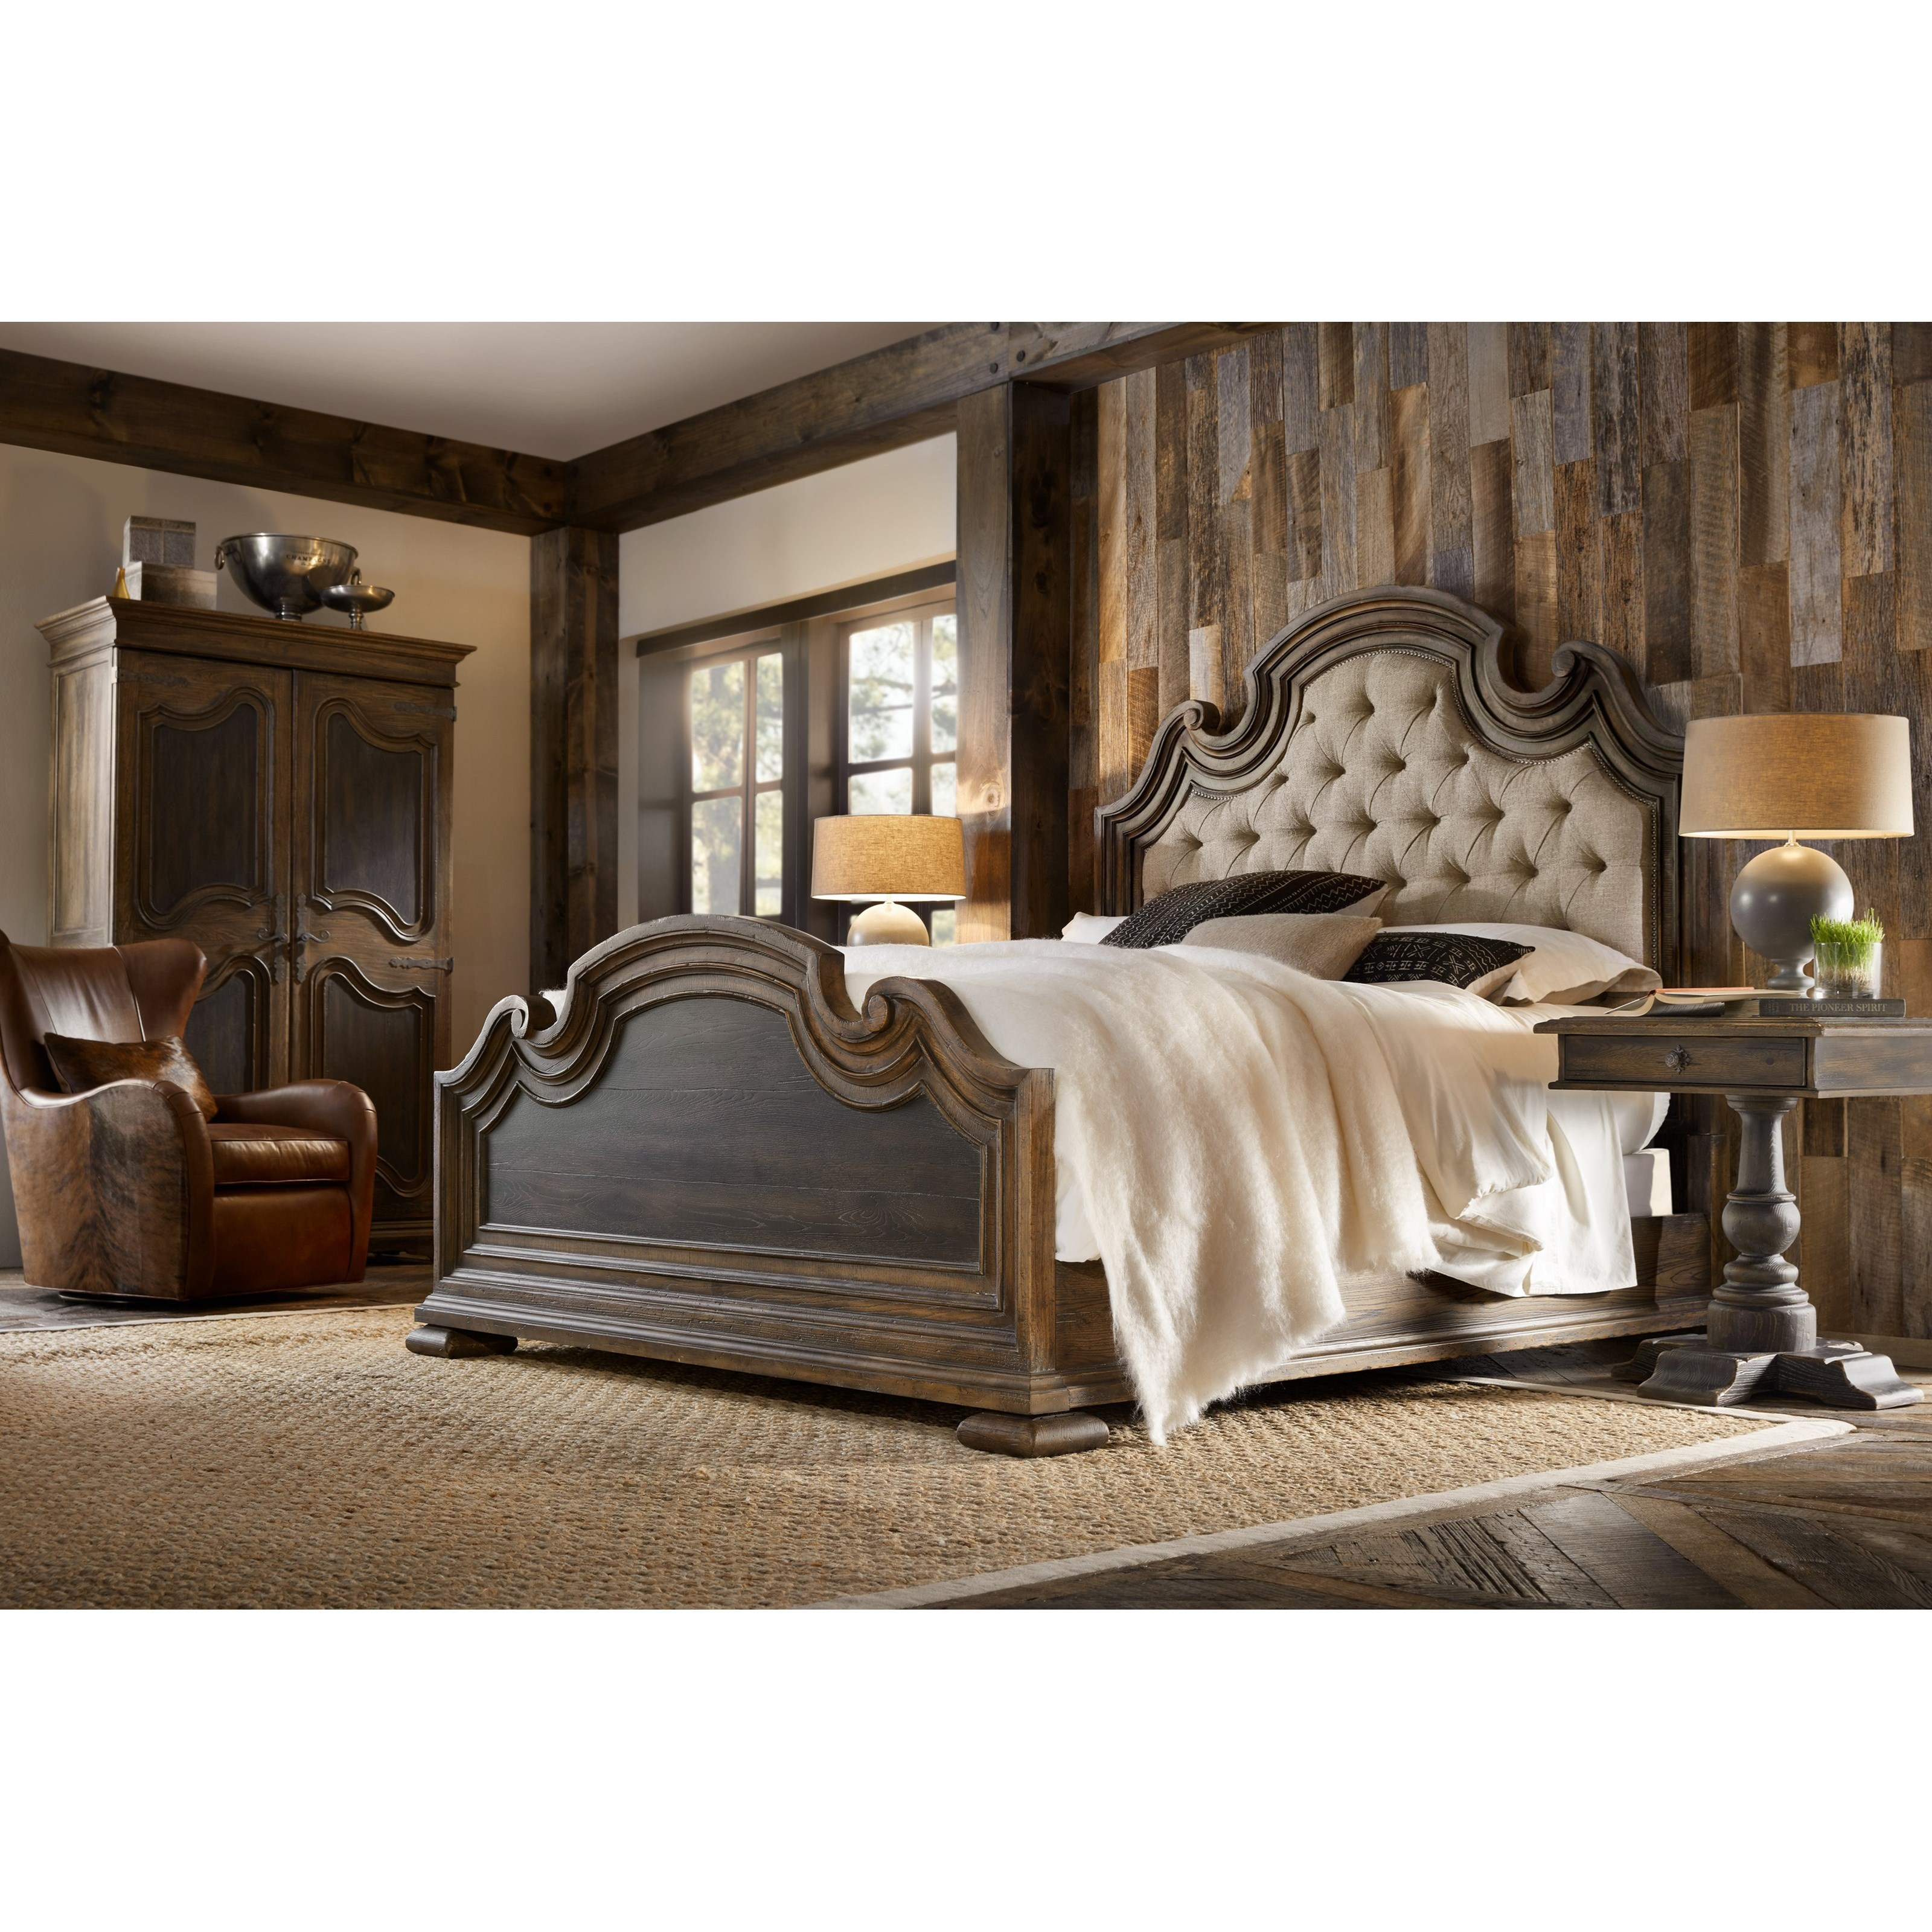 hooker furniture hill country lakehills wardrobe with full length mirror jacksonville. Black Bedroom Furniture Sets. Home Design Ideas